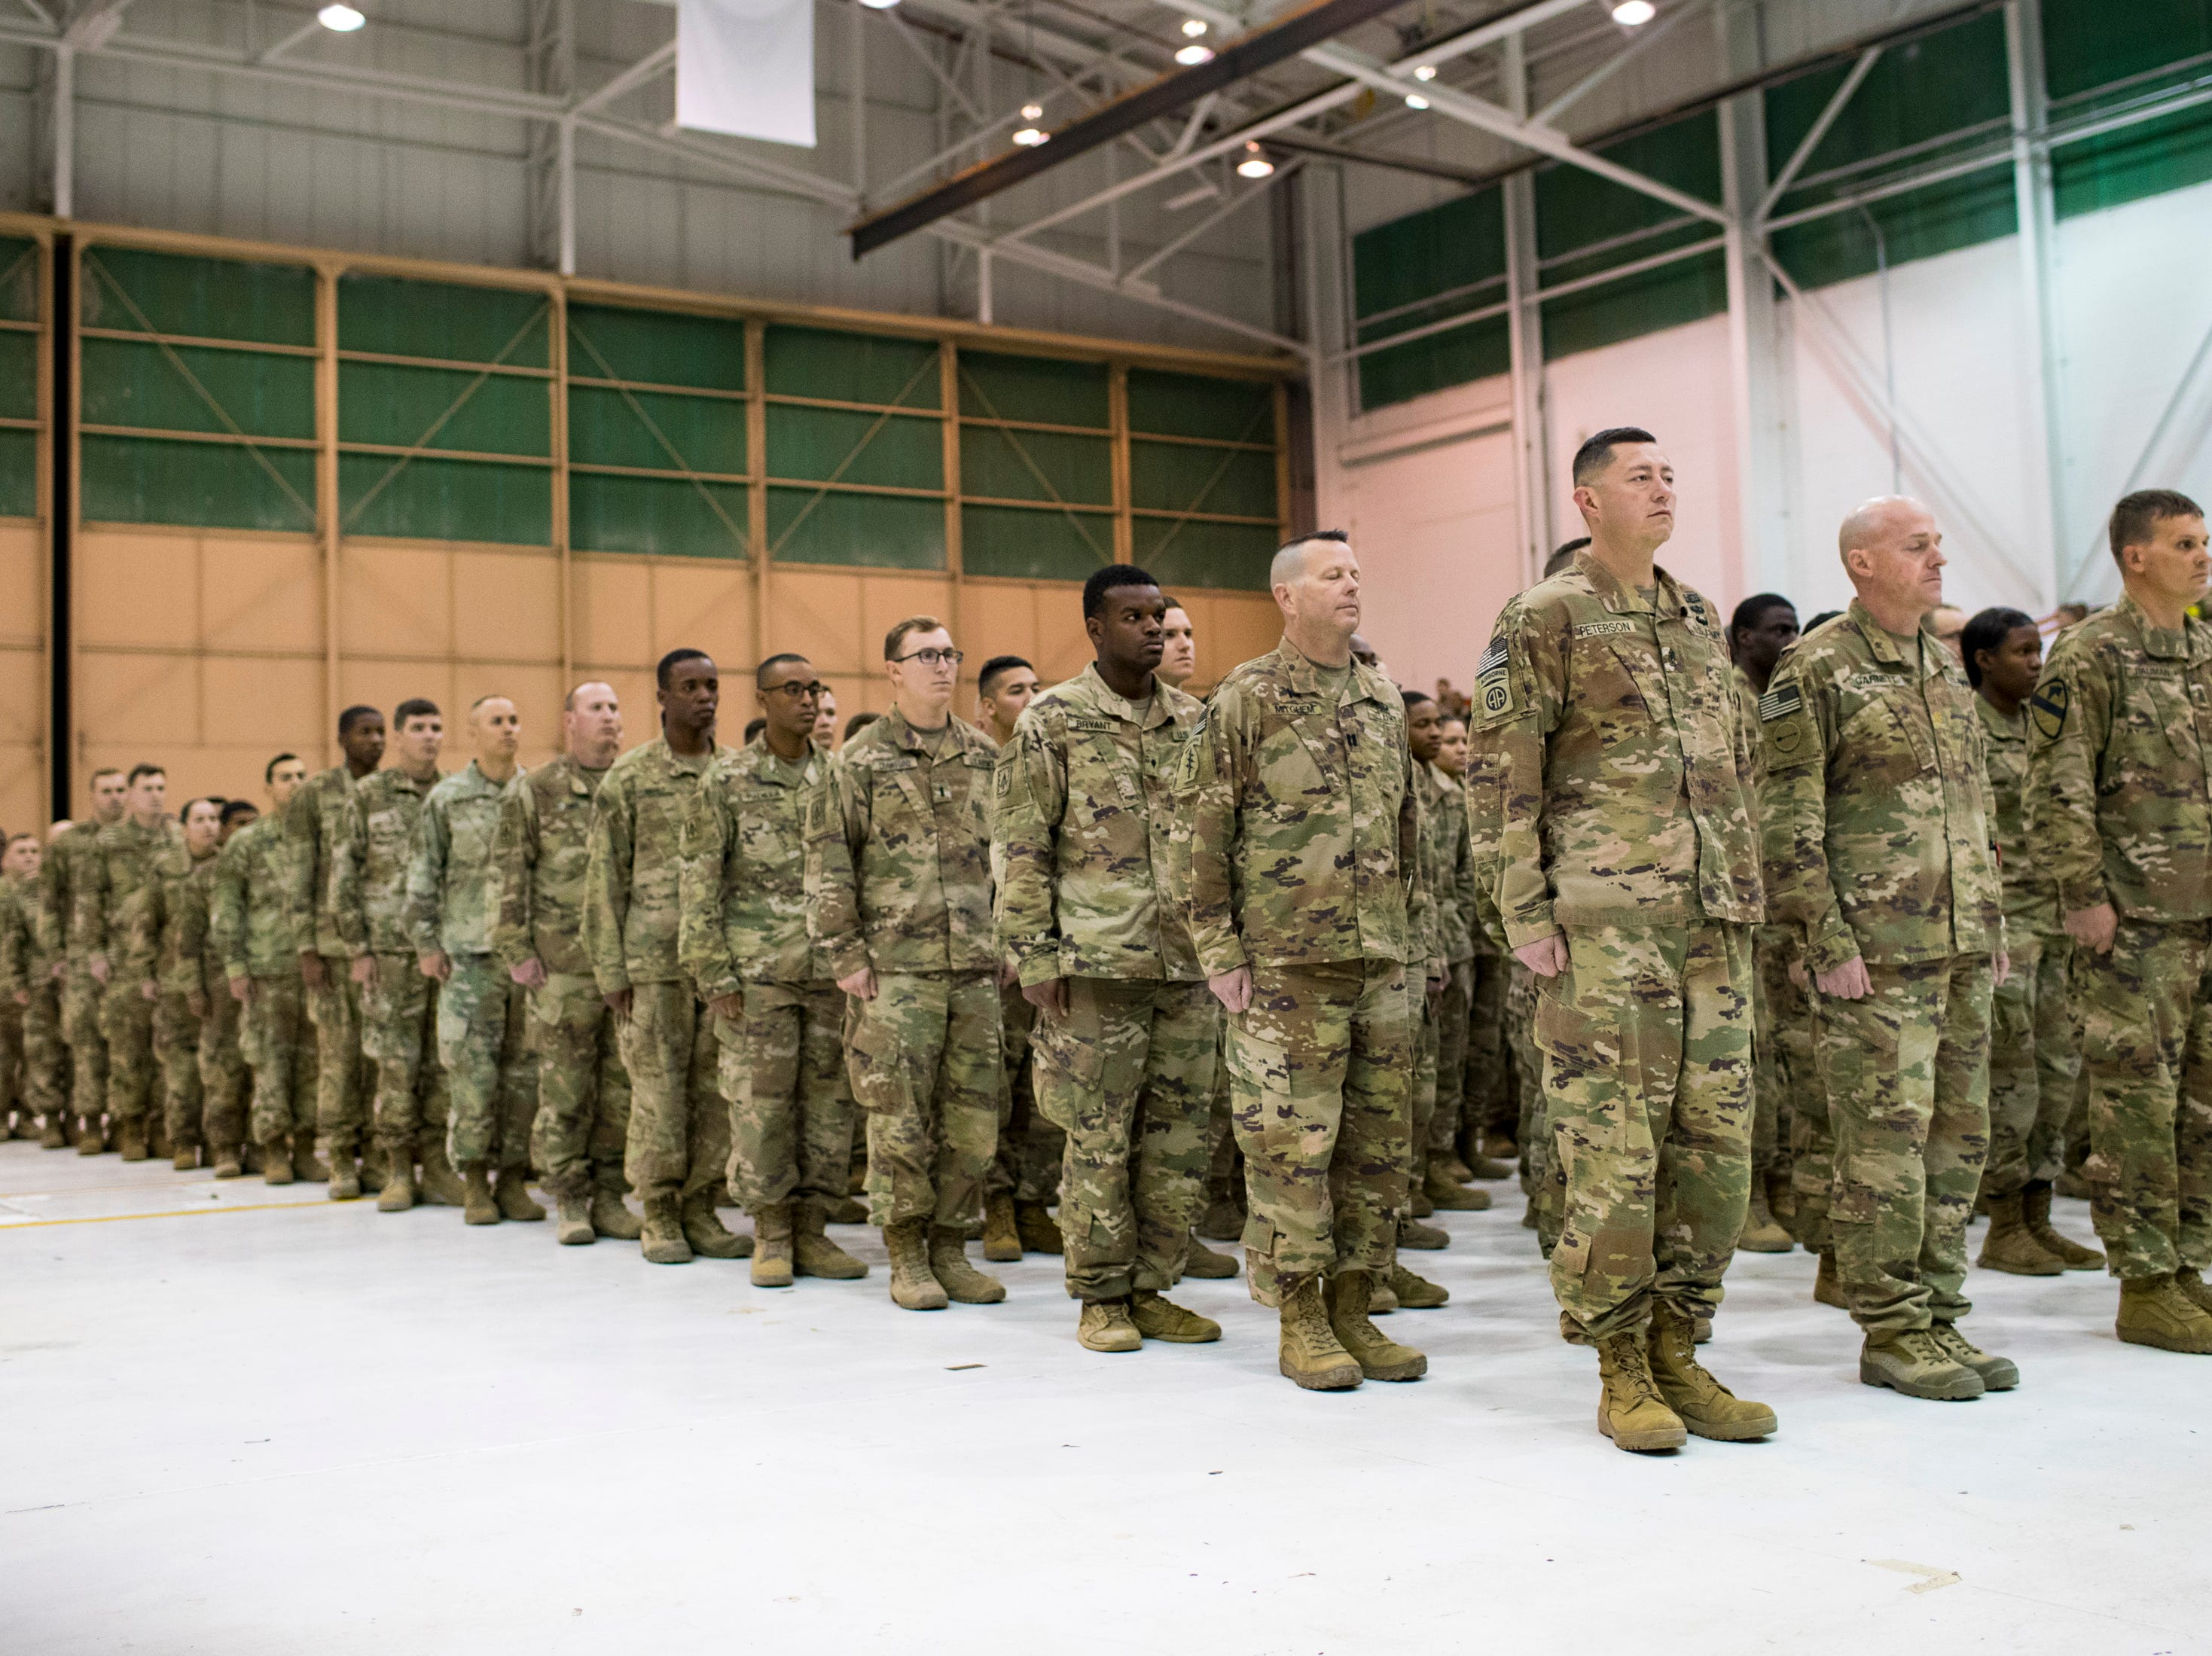 The soldiers stand in formation during the welcome home ceremony for the 2nd Battalion, 44th Air Defense Artillery Regiment and 101st Airborne Division at Fort Campbell in the early hours of Monday, Nov. 19, 2018. The soldiers were returning from a 9-month deployment in Afghanistan.